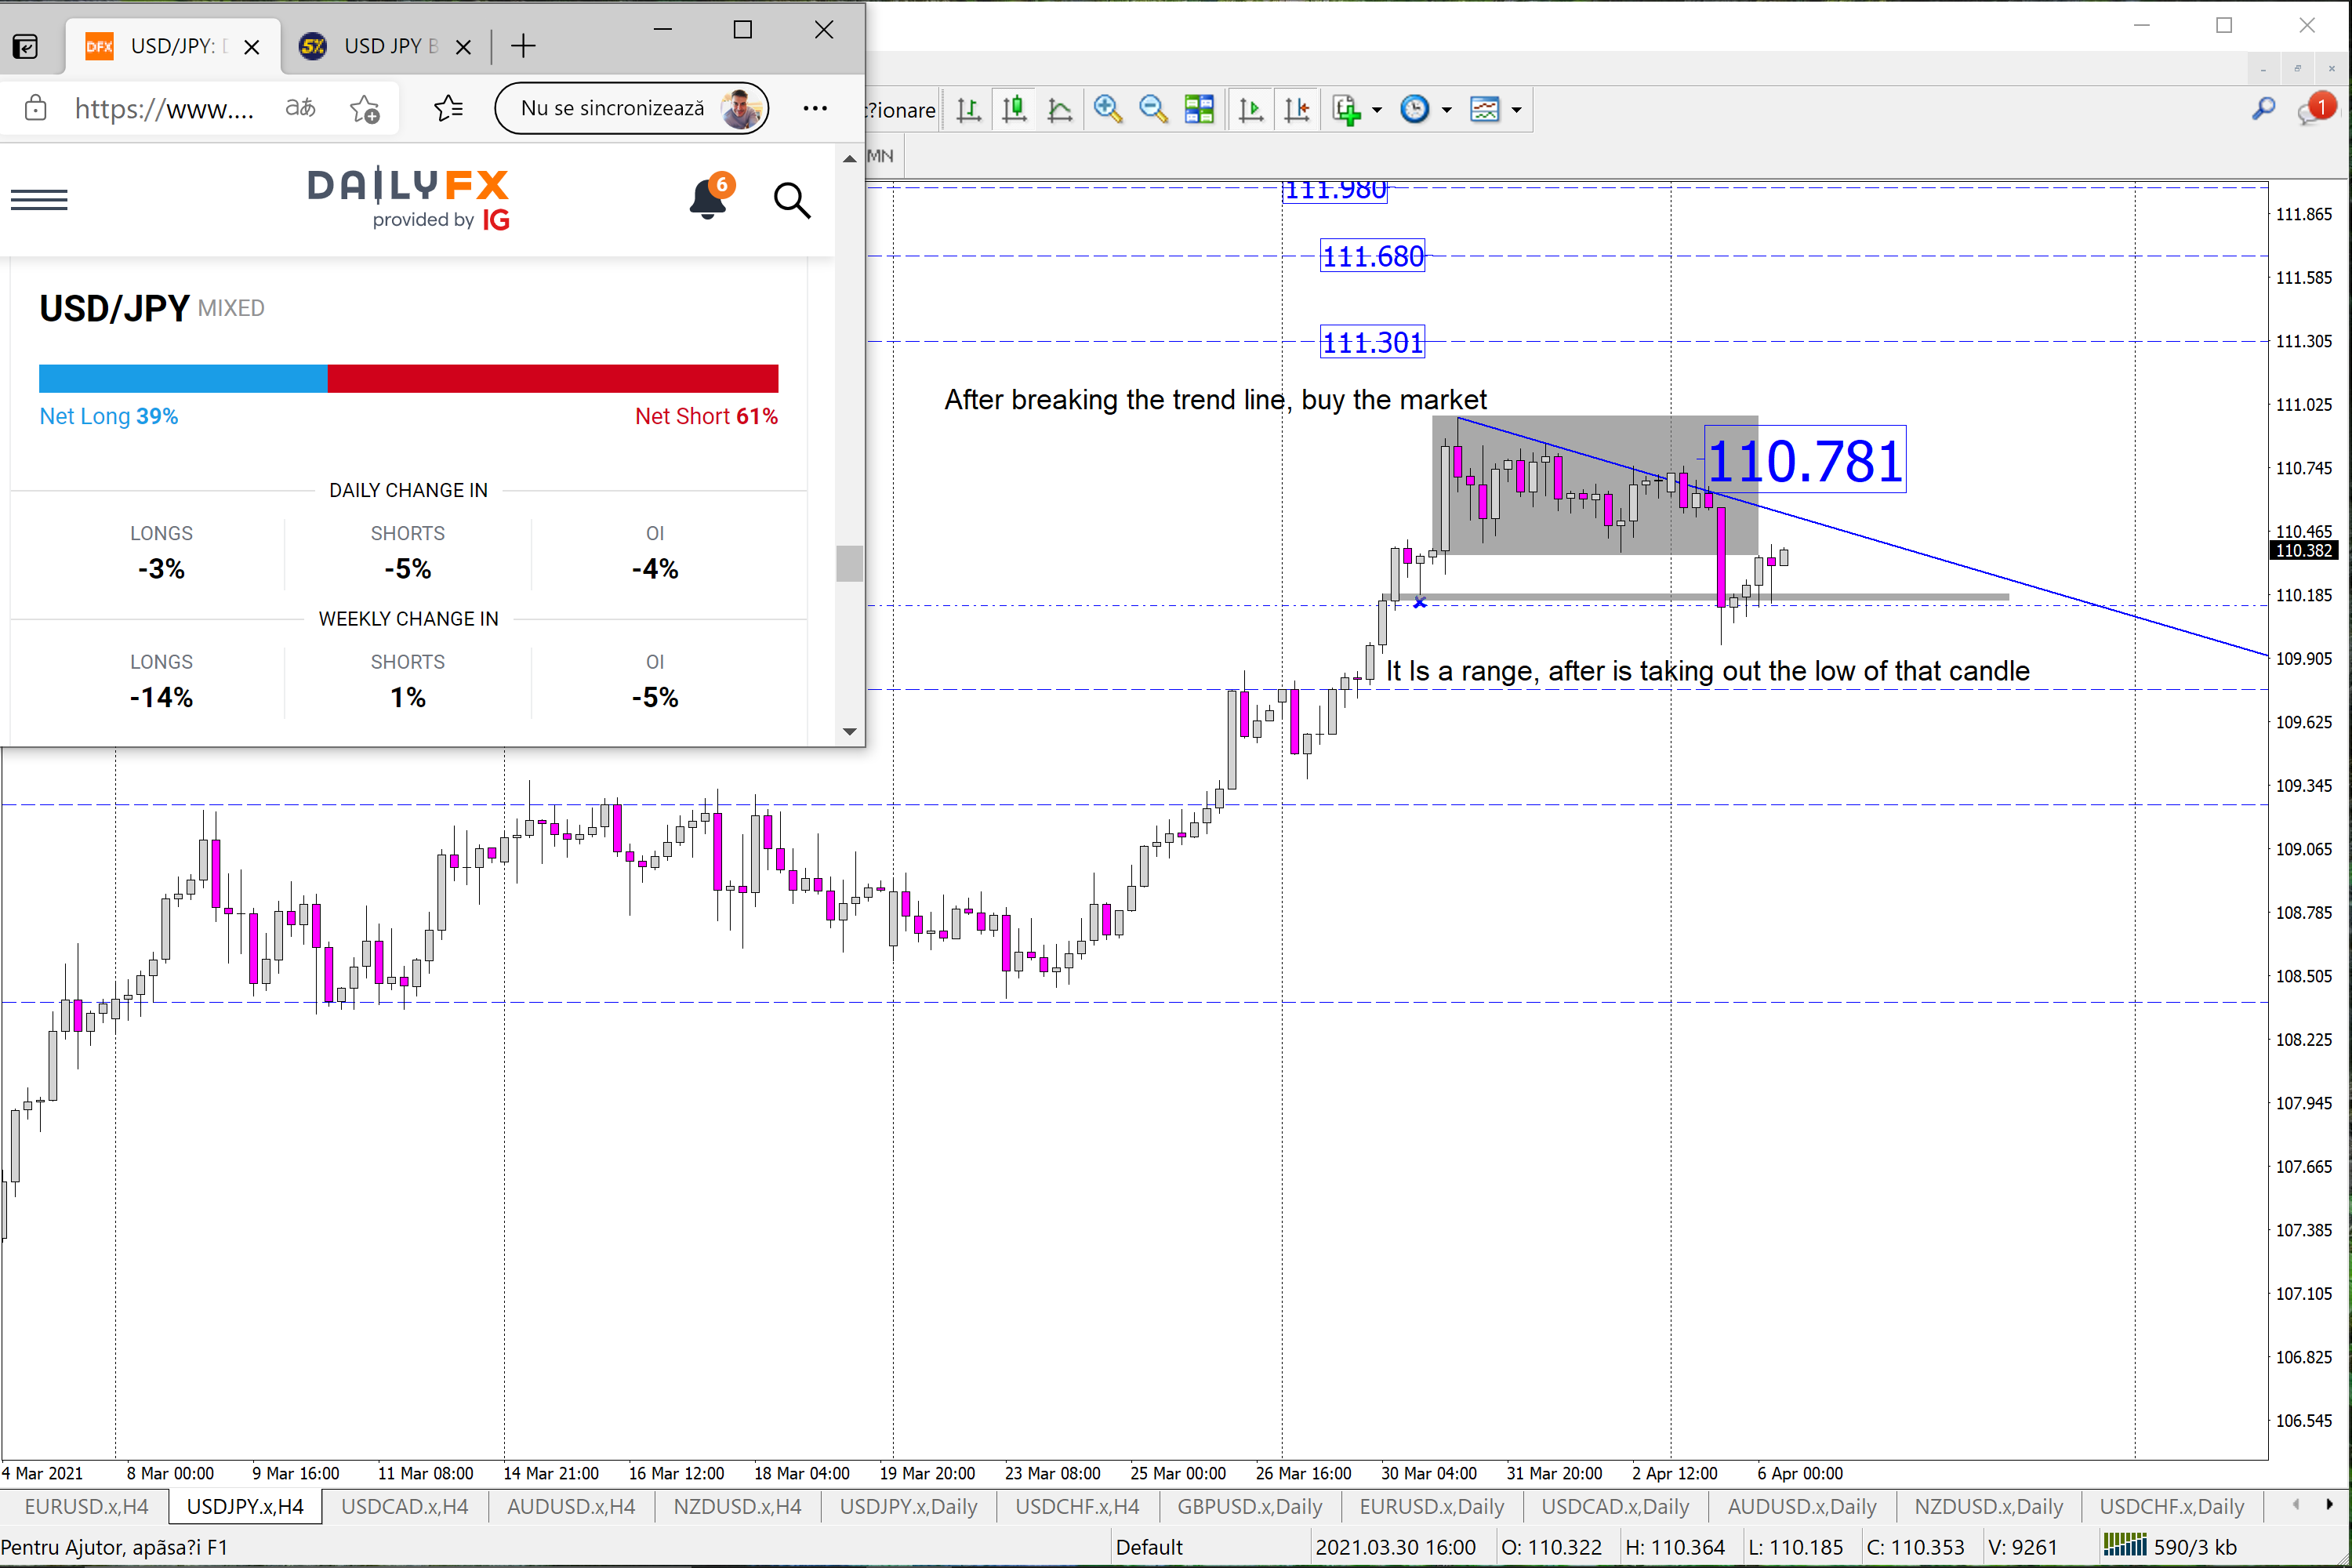 USD/JPY H4 Price action and liquidity of the market